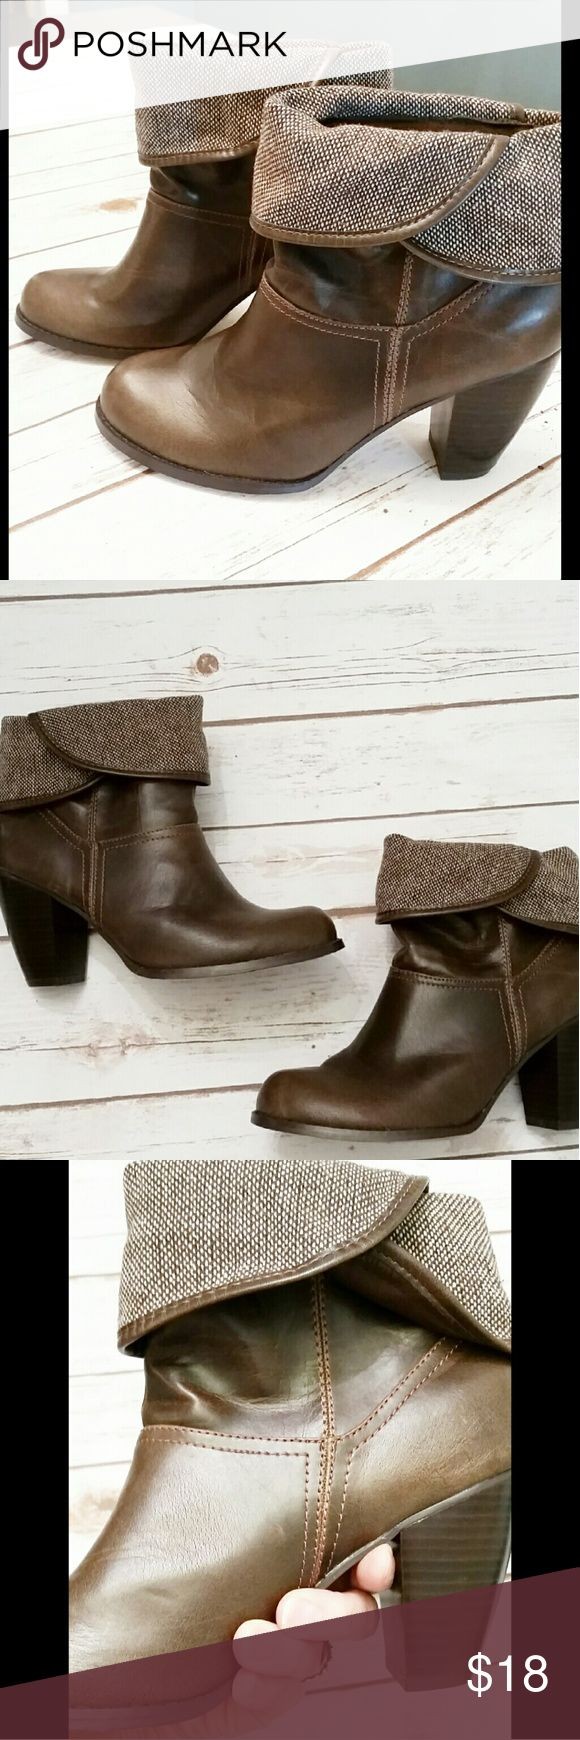 Stylish Short Brown Boots *Short foldover boots in excellent used condition. Heel is approximately 3 inches high. Only worn once. Mudd Shoes Ankle Boots & Booties